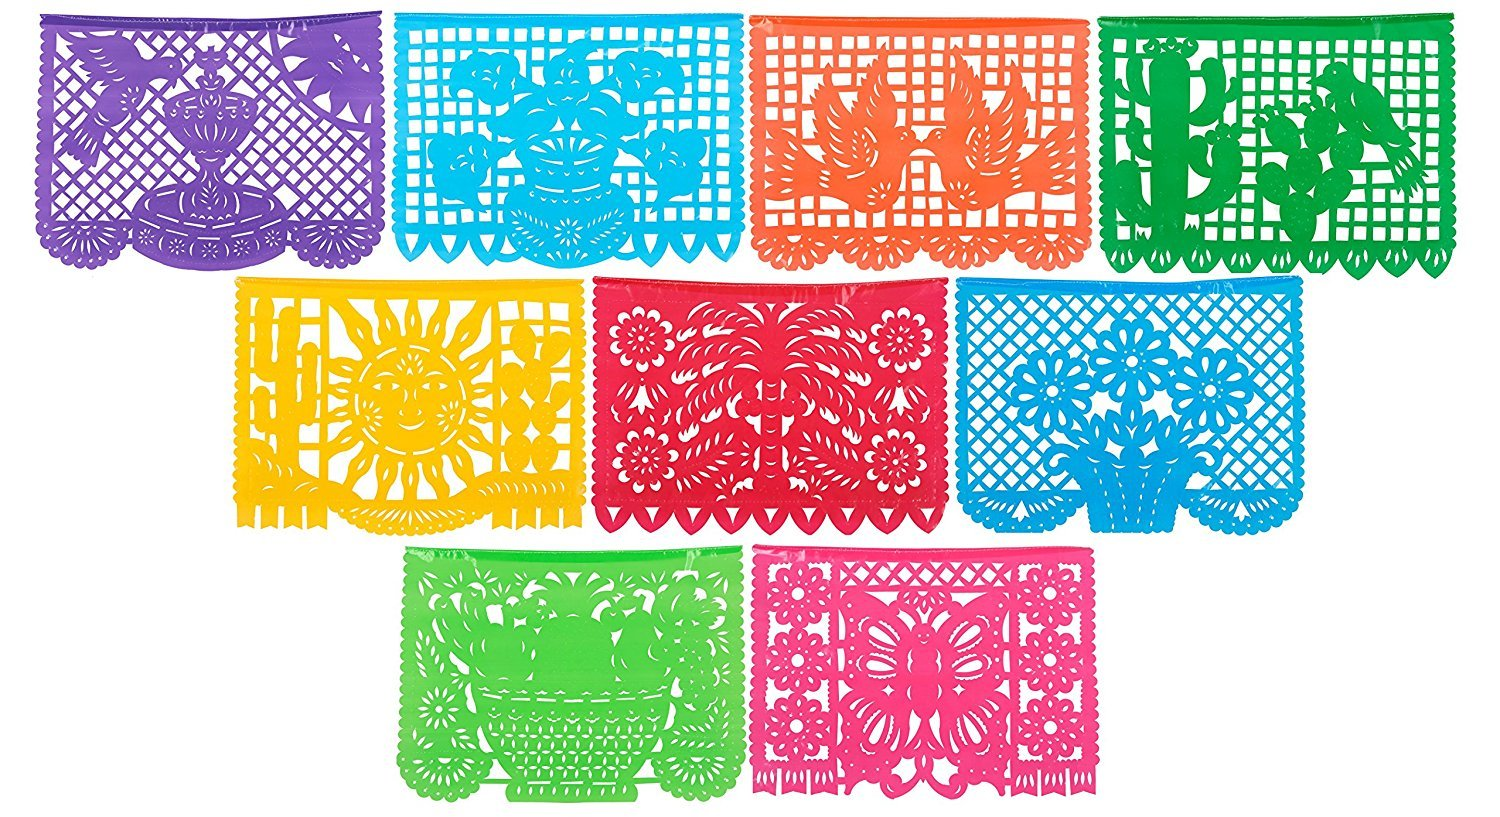 Paper Full of Wishes Large Plastic Papel Picado Banner - Party Packs - 15ft Long / 9 Panels - Designs as Pictured (10pk)